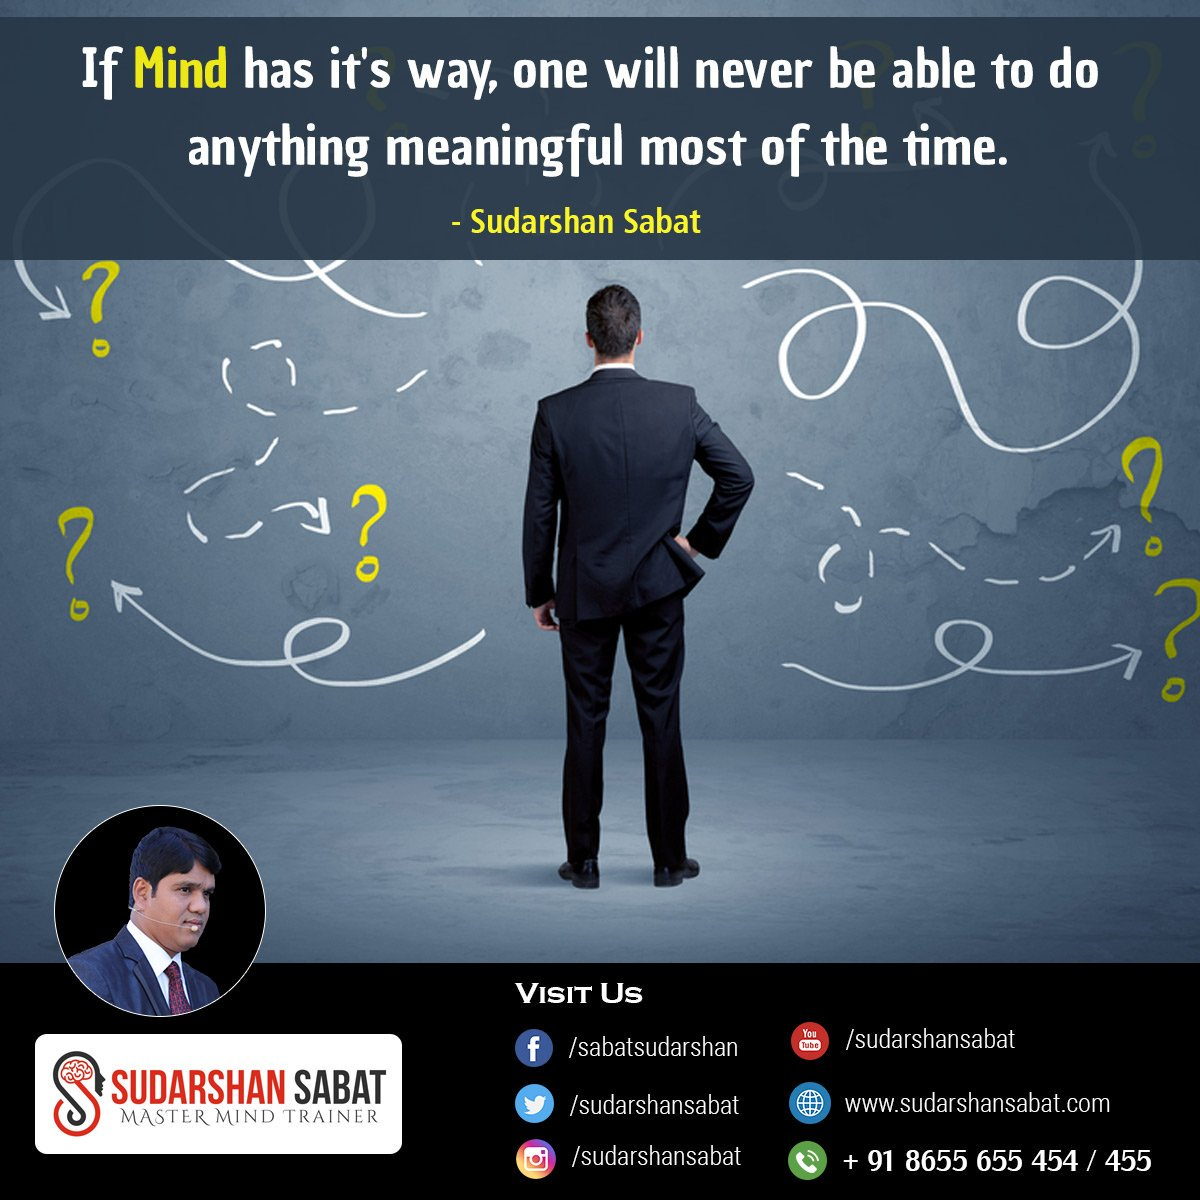 If Mind has it's way, one will never be able to do anything meaningful most of the time.  #MindTrainer #motivationalquotes #successquotes #successdriven #successfulminds  #motivationalspeaker #WednesdayMotivation #WednesdayWisdom #WednesdayThoughts  #today #ThoughtOfTheDay<br>http://pic.twitter.com/8eSfv5FIWS